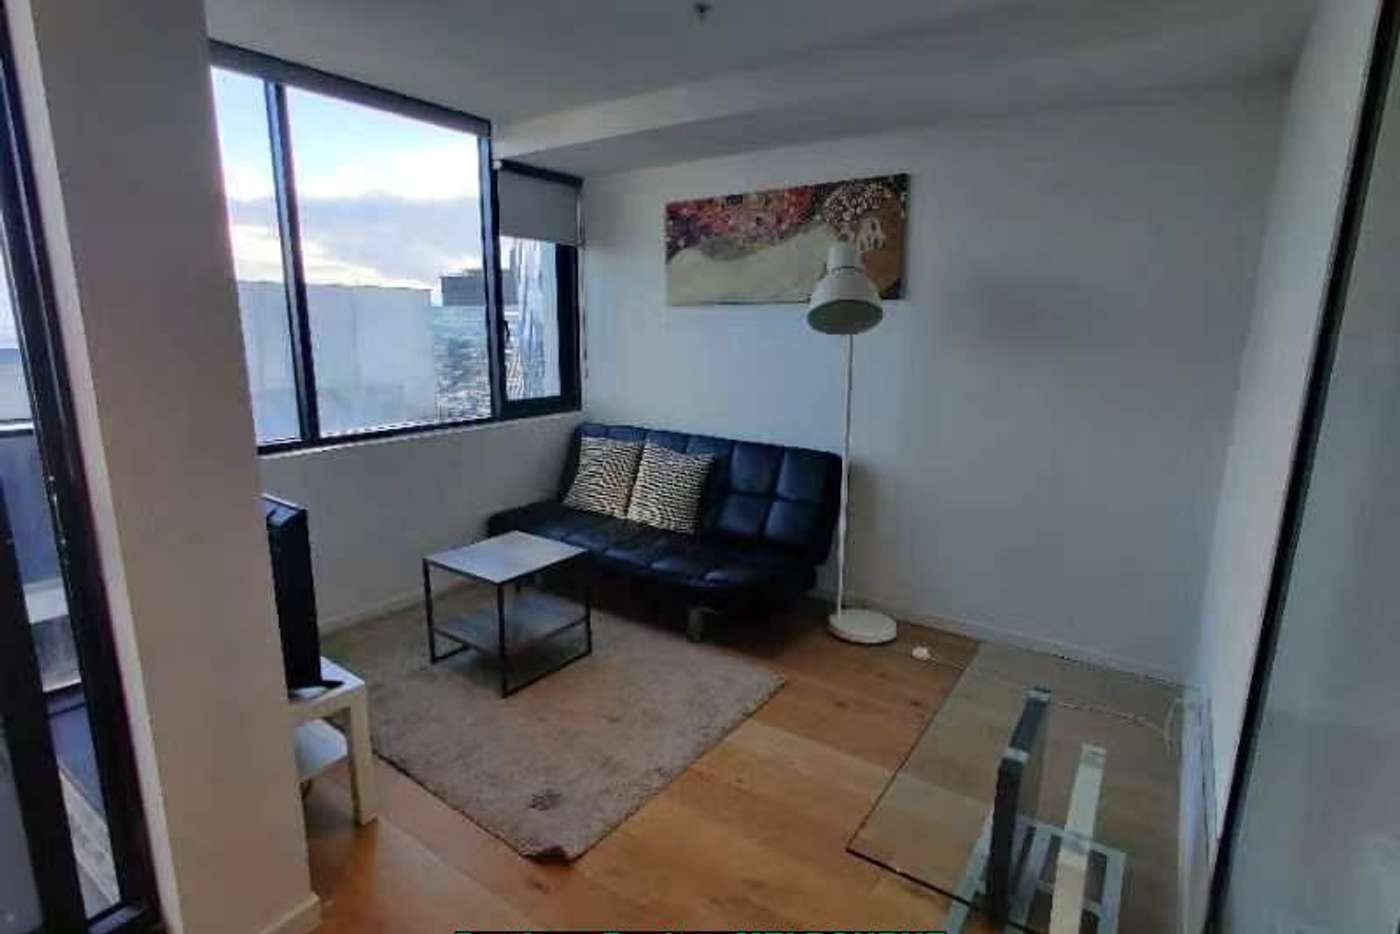 Main view of Homely apartment listing, 3904/33 Rose Lane, Melbourne VIC 3000